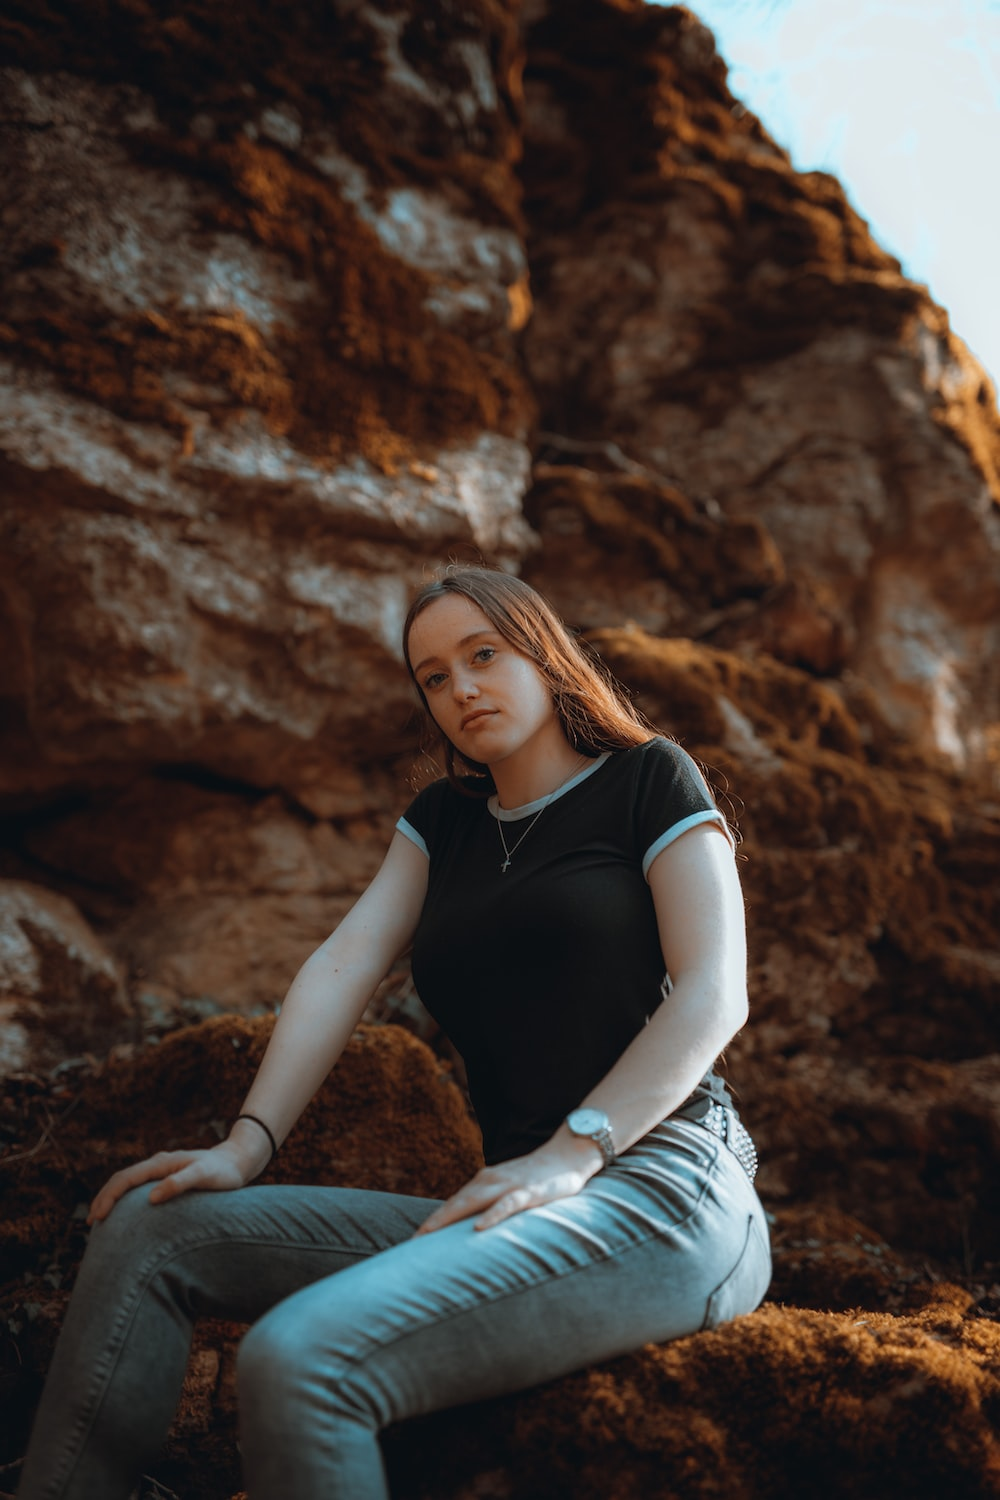 woman in black shirt and white skirt sitting on rock